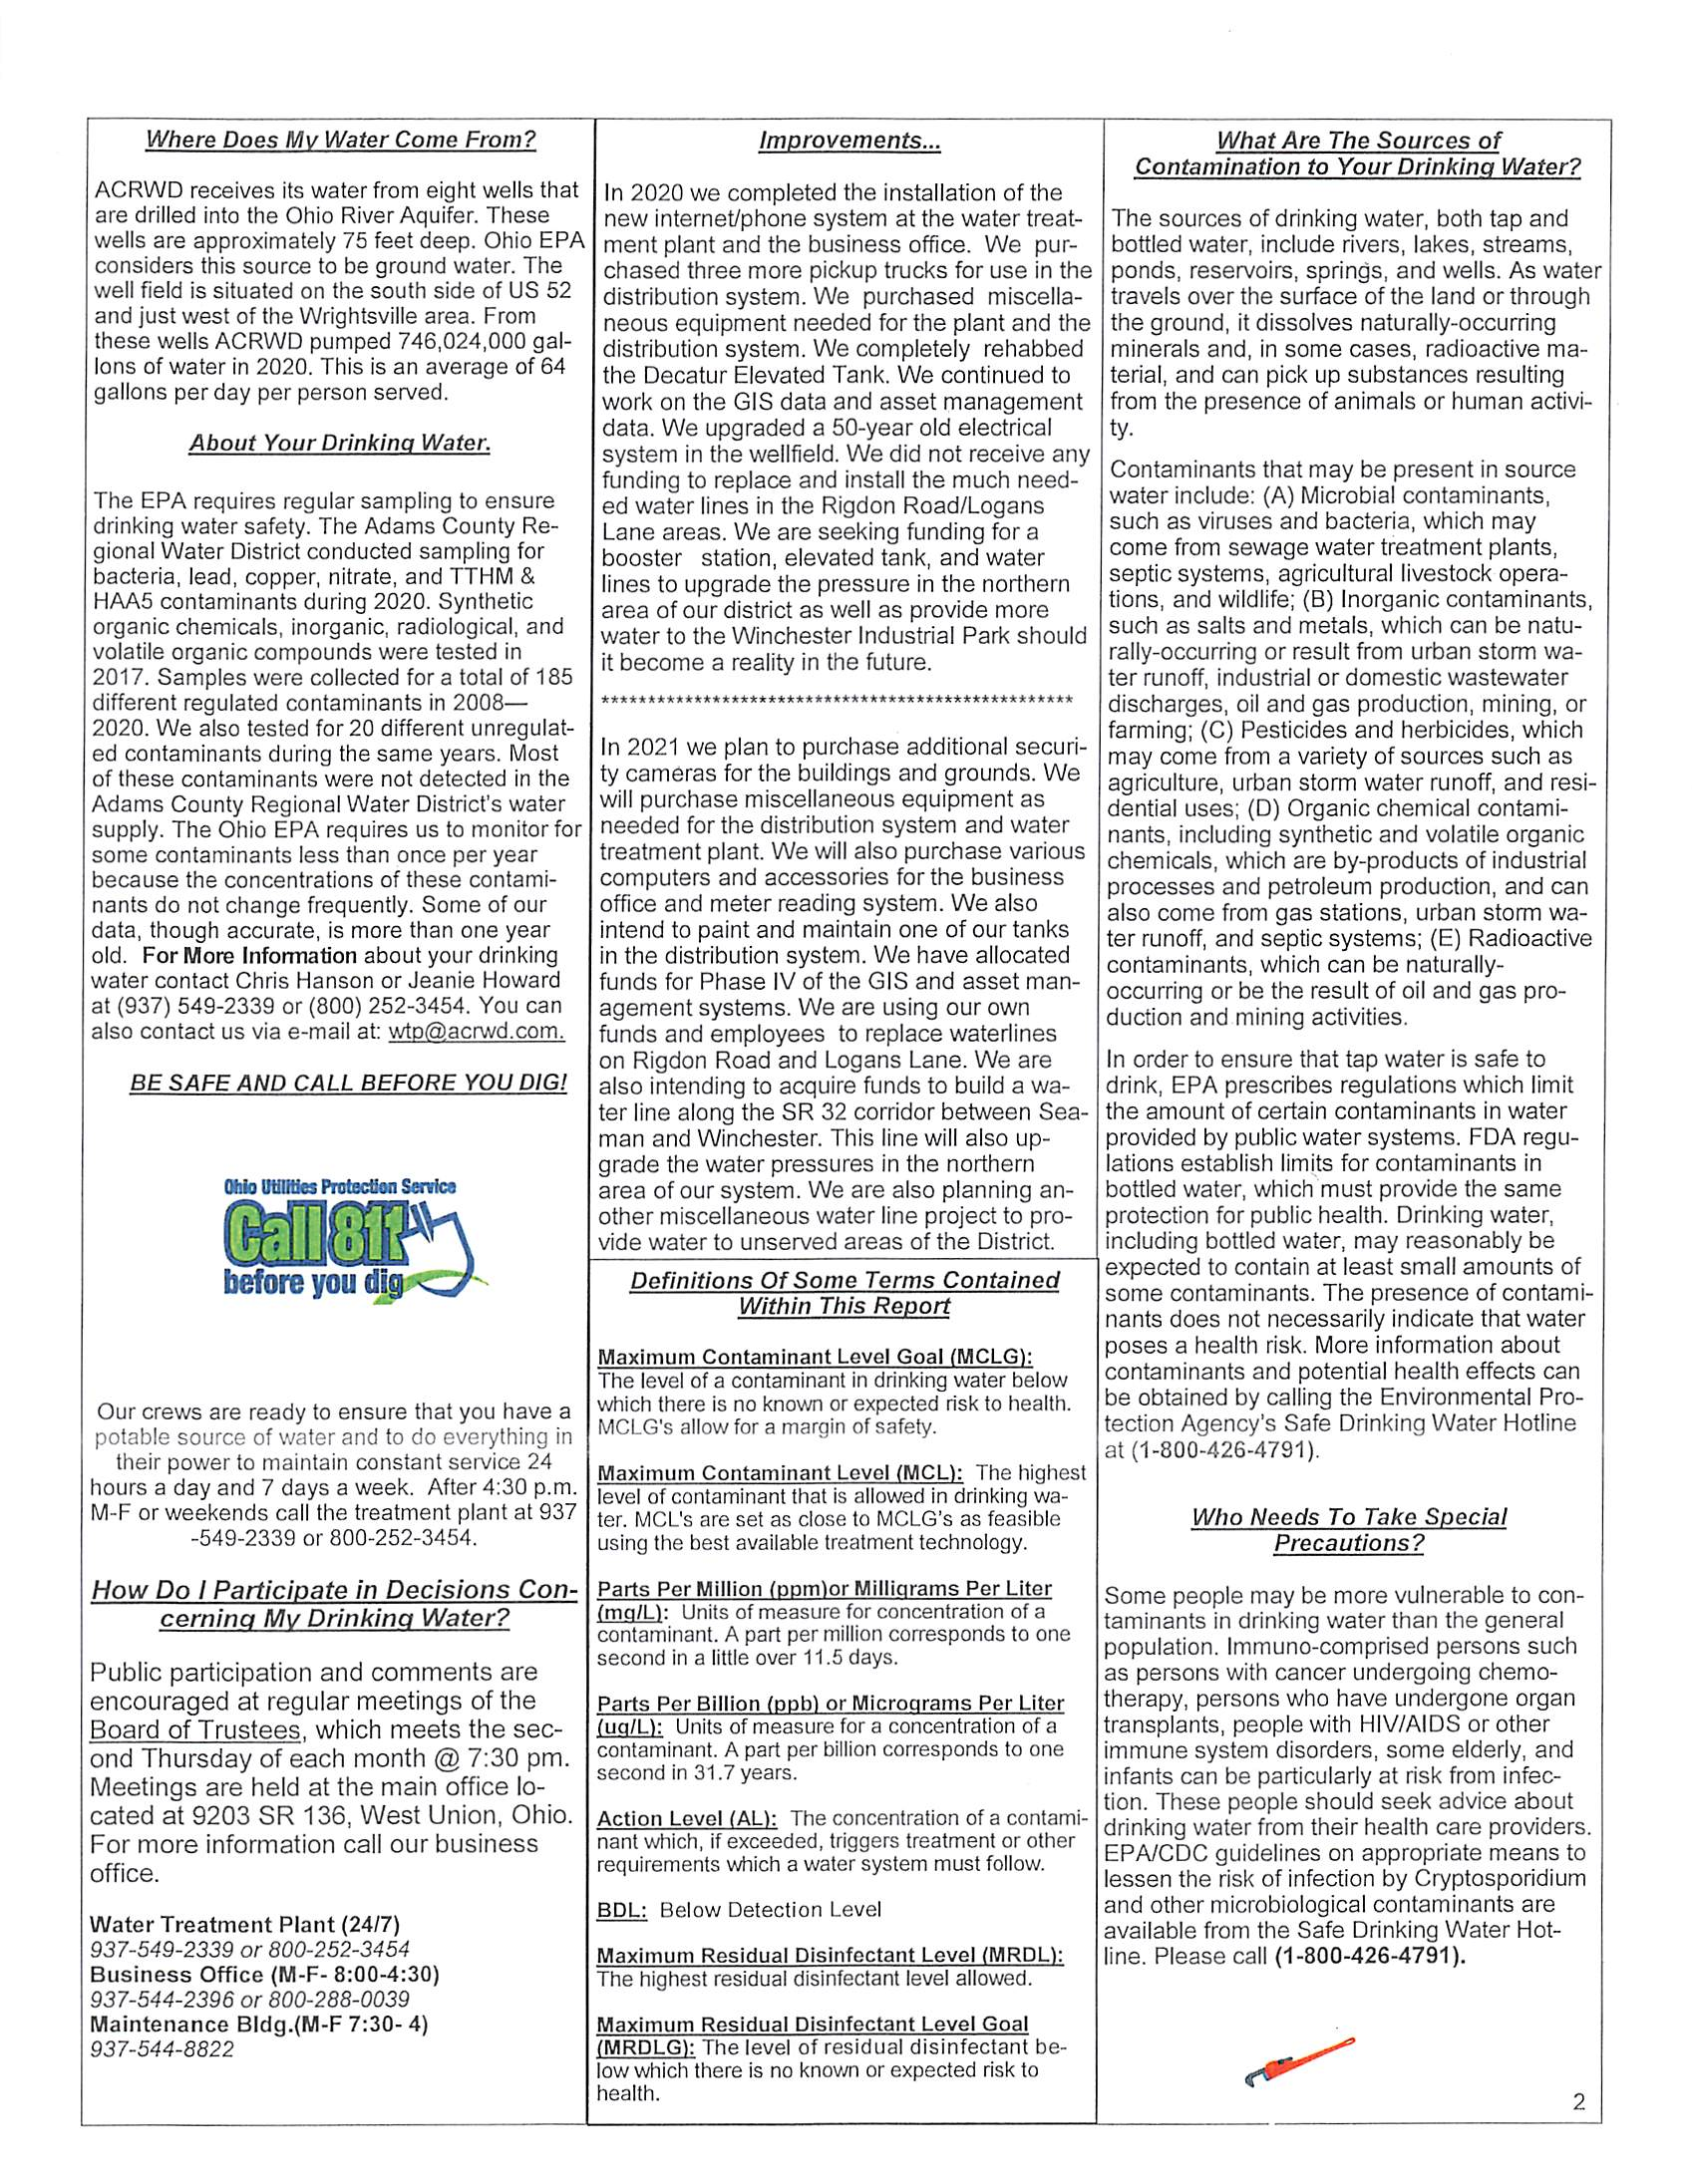 CCR-2020-Page 2